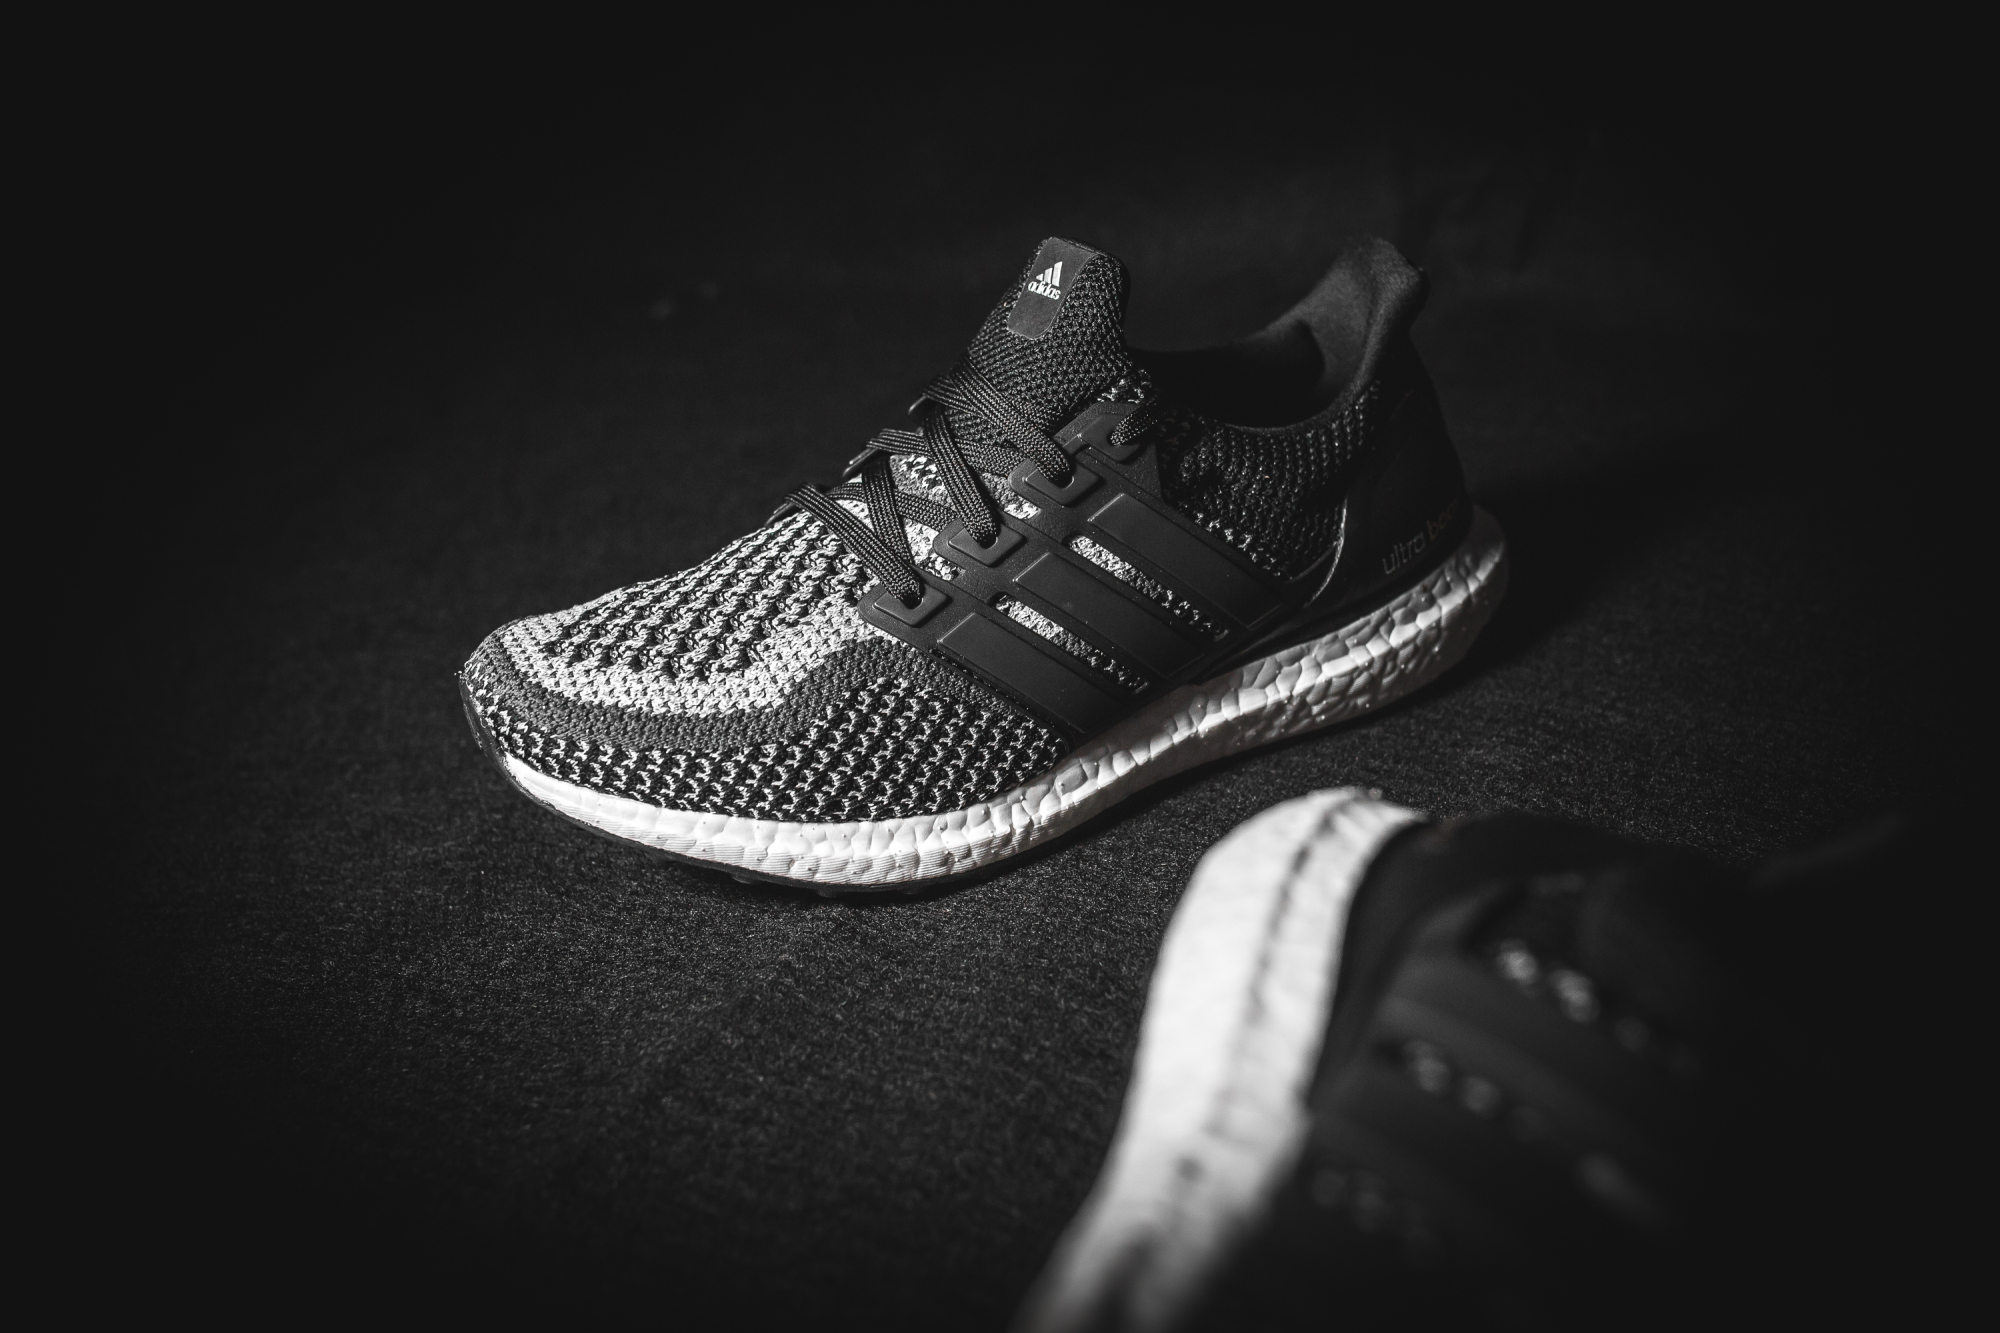 pretty nice 7bc1a 25fad adidas Ultra Boost 2.0 'Reflective' Has Arrived - WearTesters